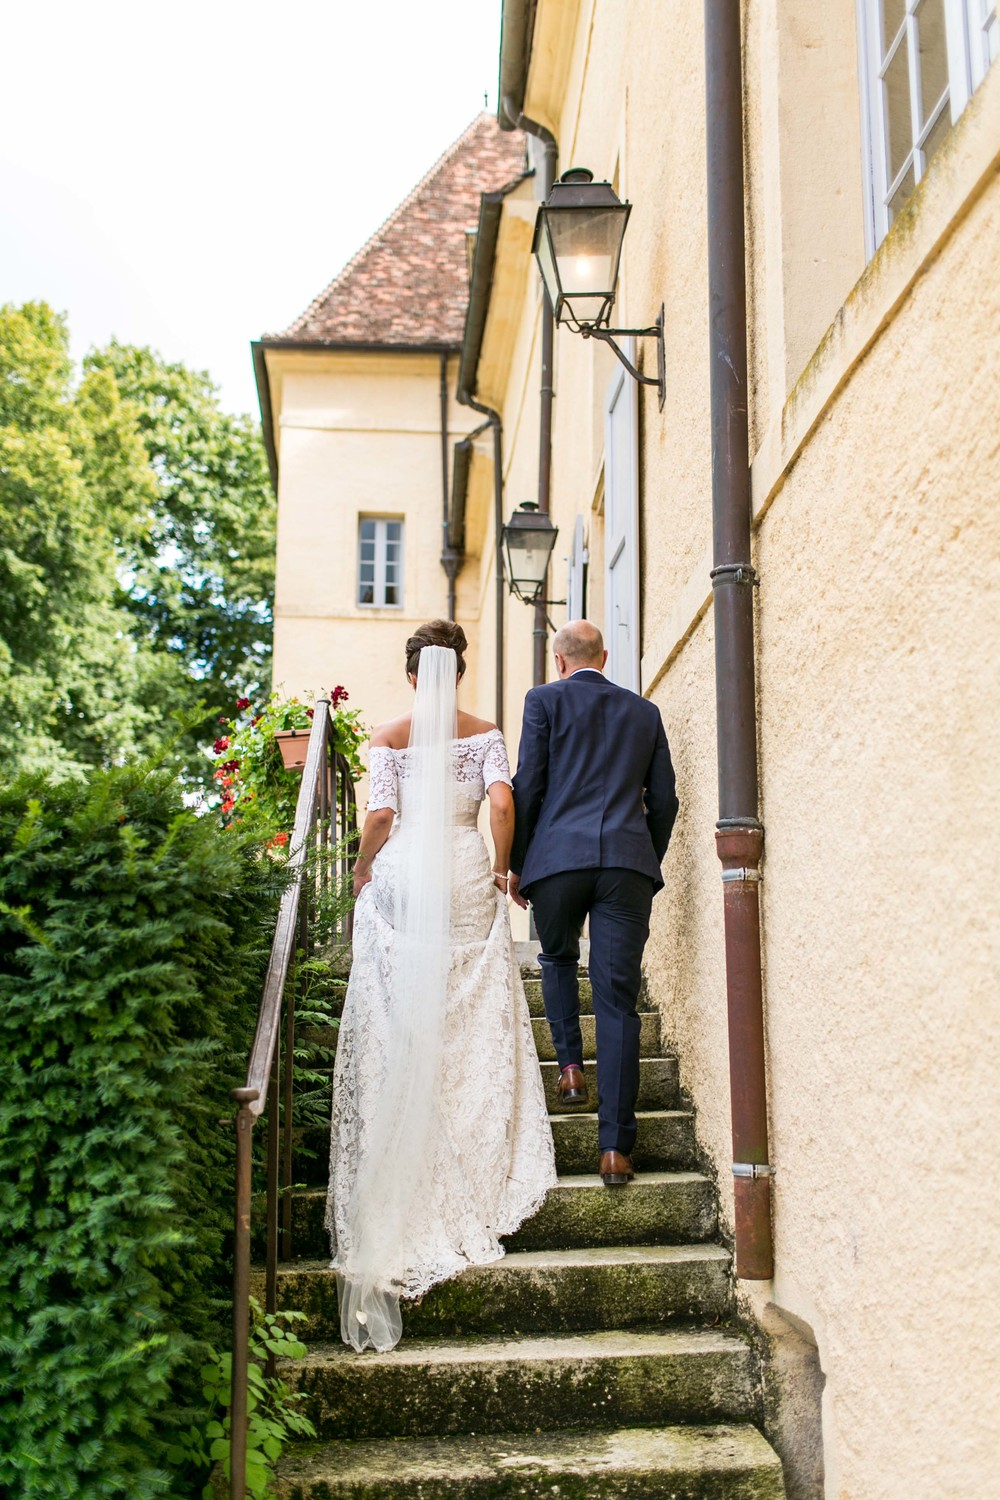 Berlin Hochzeitsfotografin_Destination Wedding Photographer-90.jpg